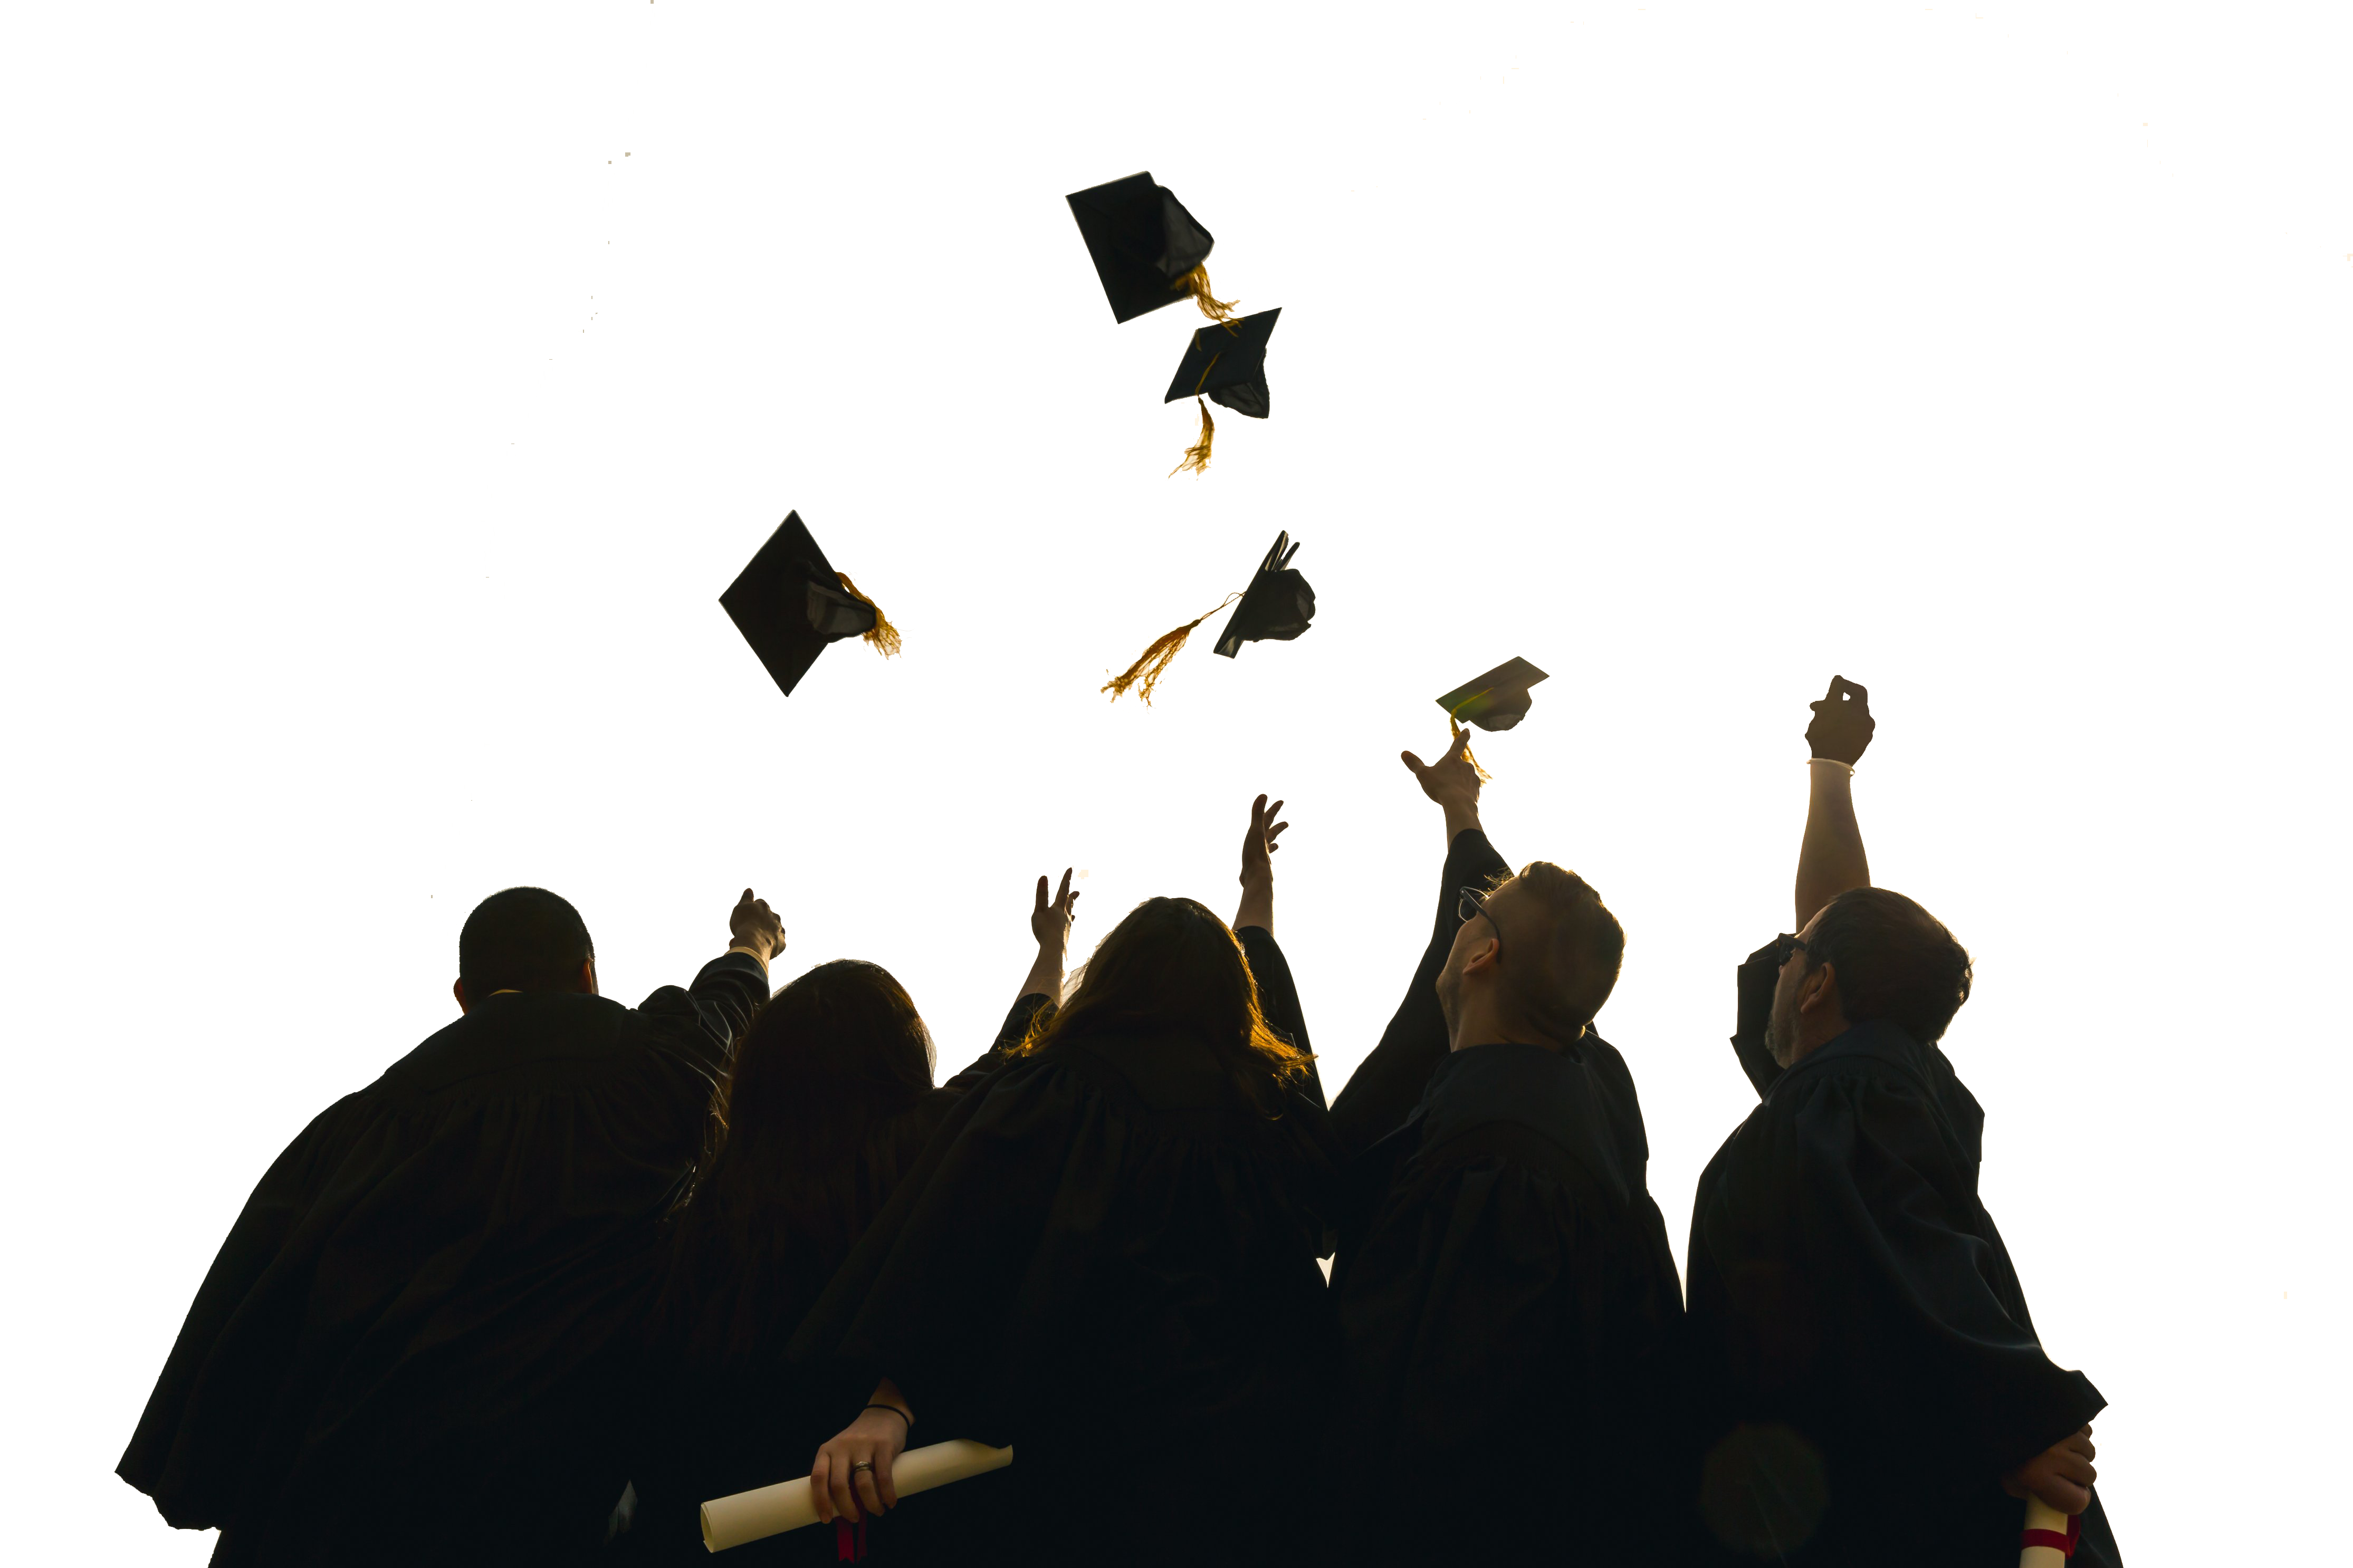 Graduation hats in the air png. About us rising stars